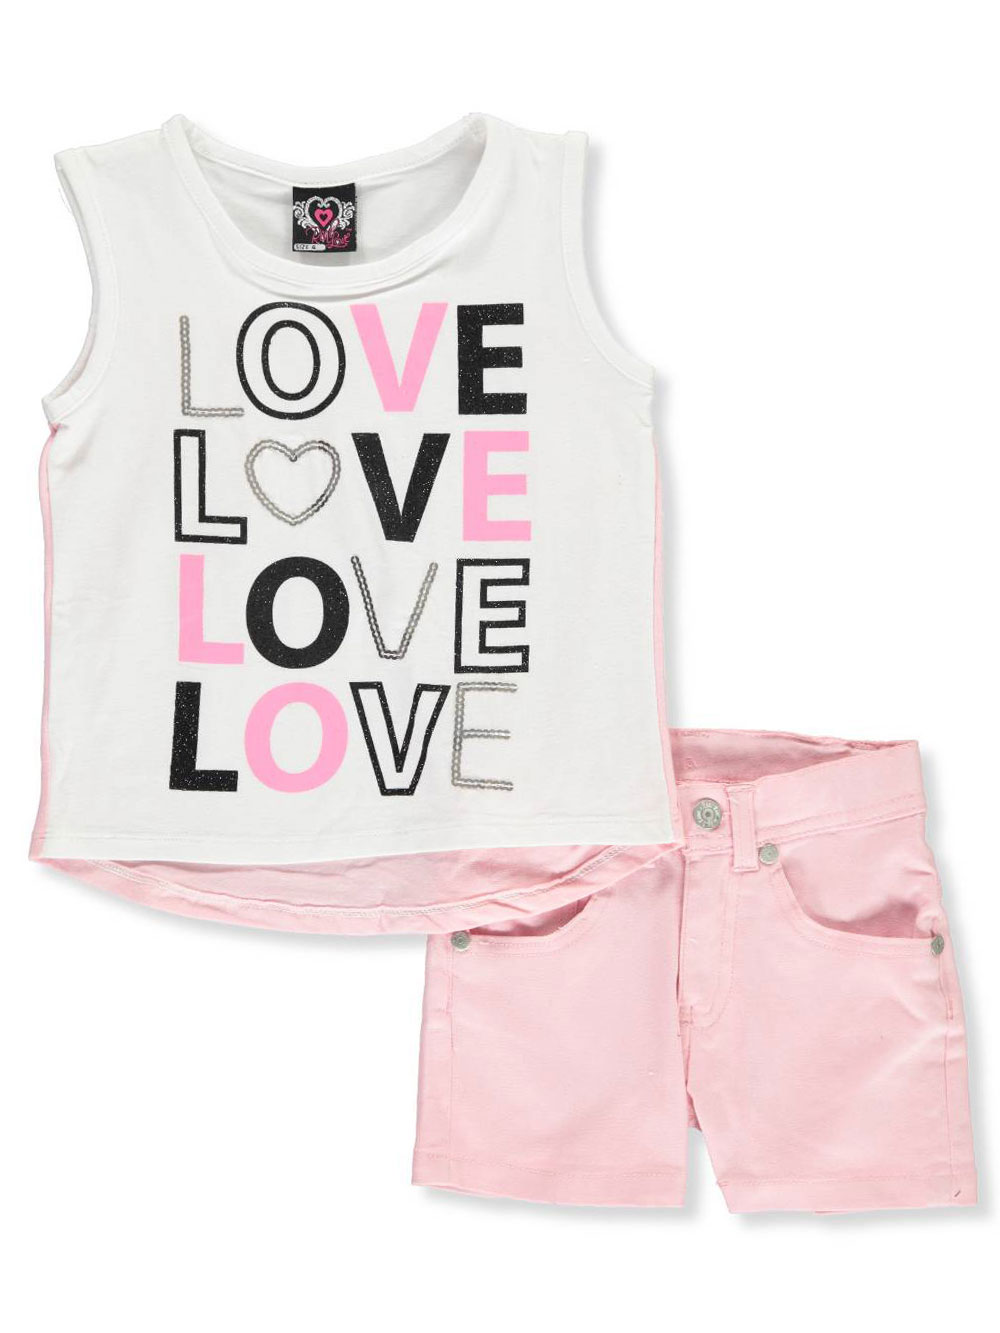 49cab9ee0 Girls' 2-Piece Shorts Set Outfit by Real Love in white/black and ...